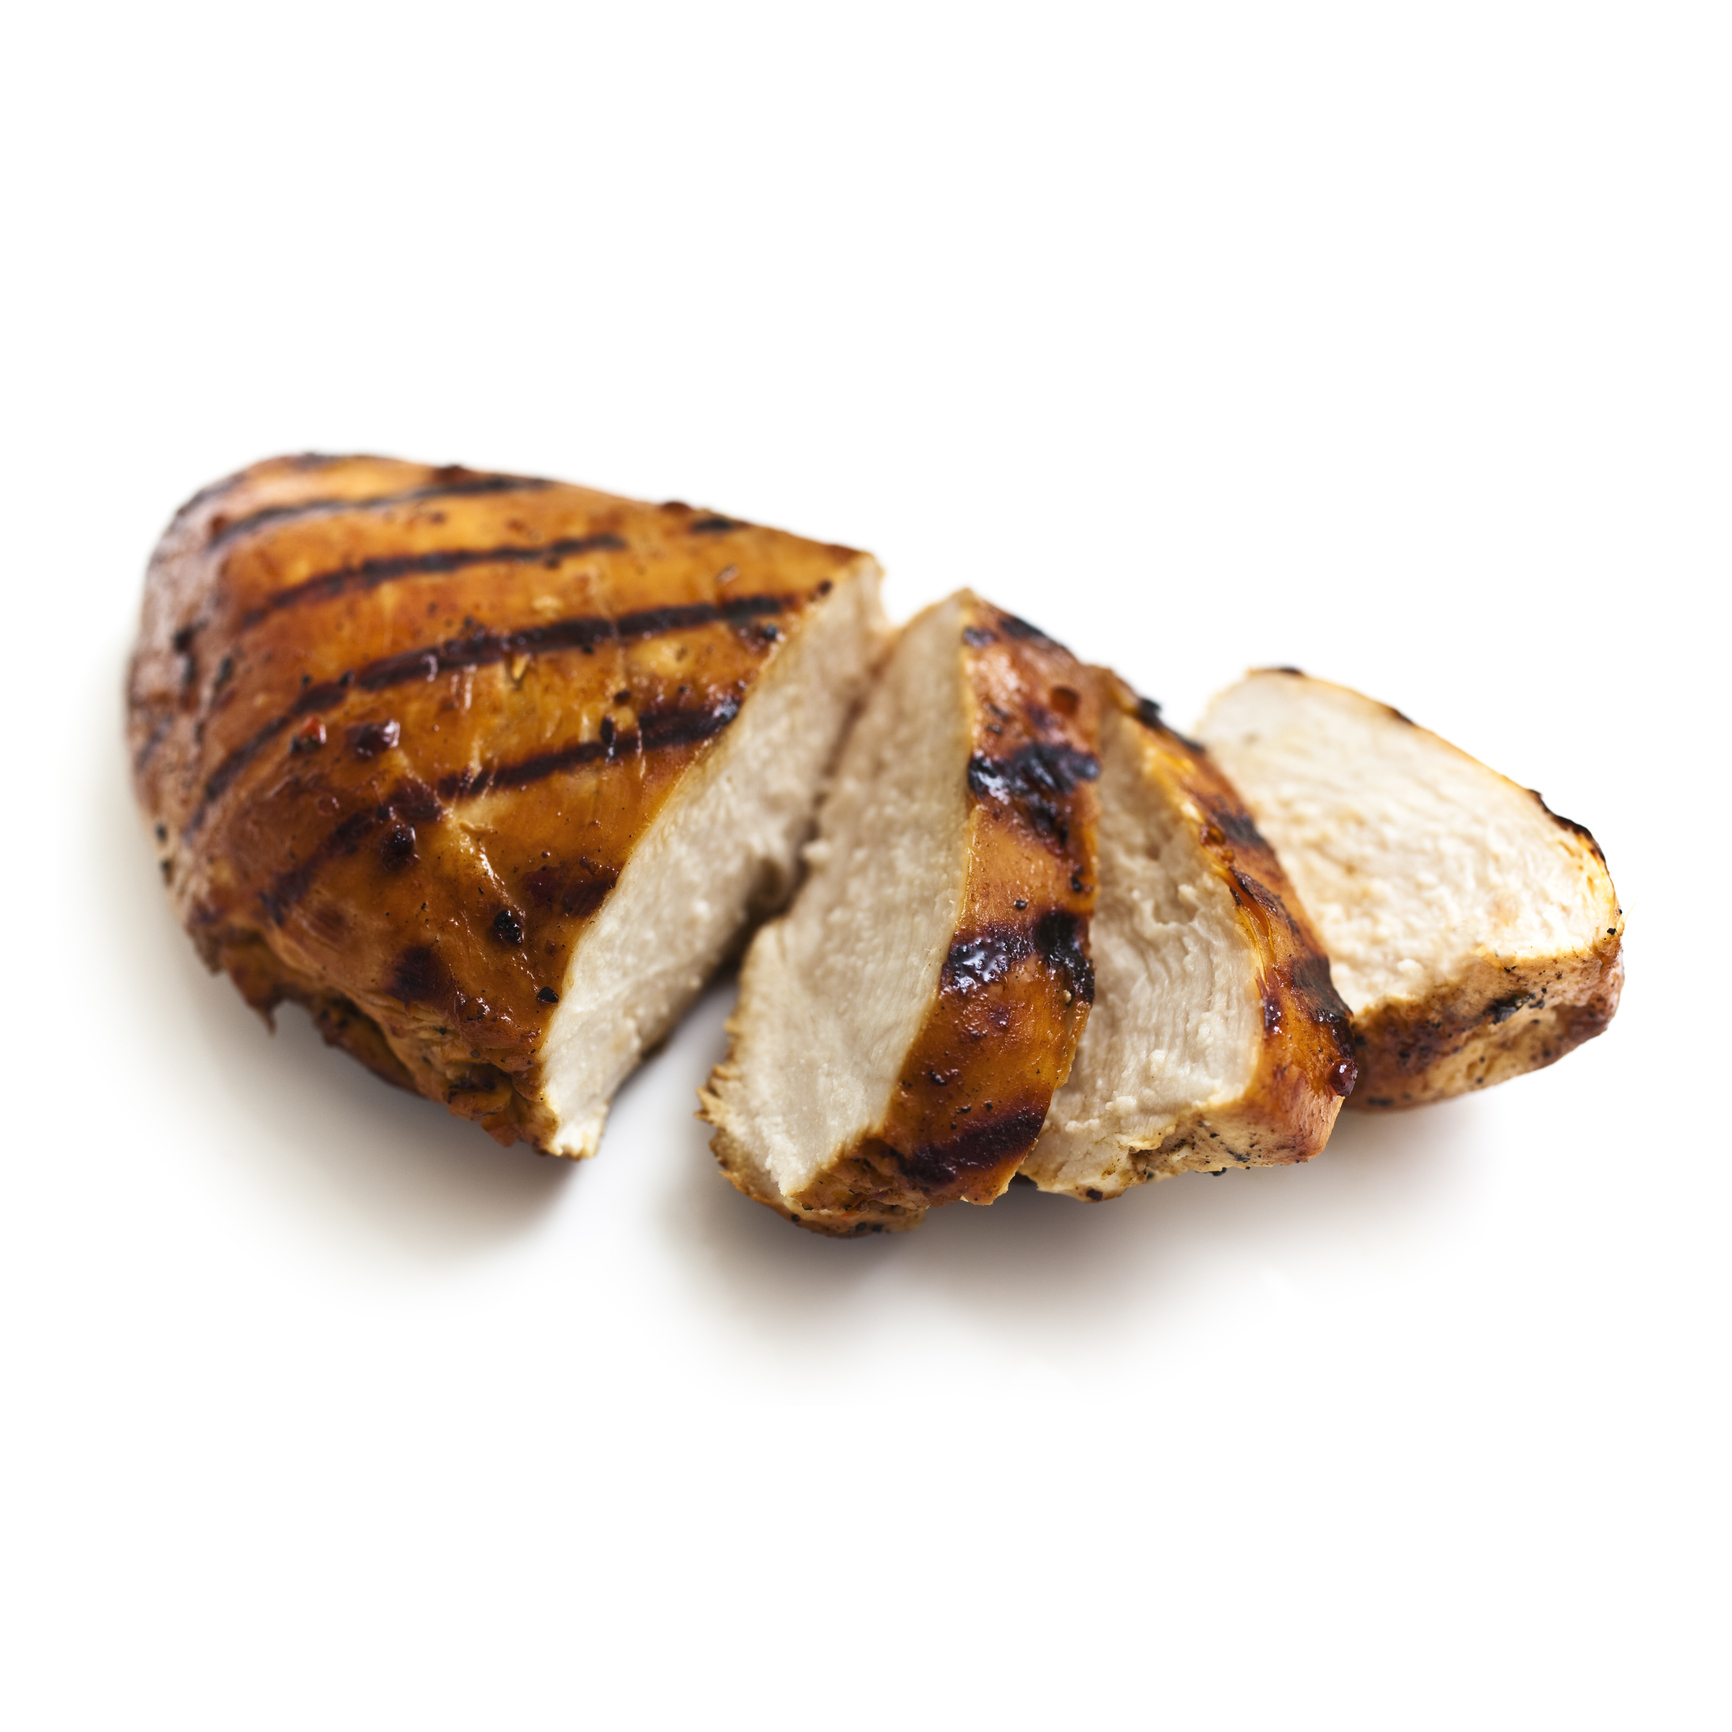 getty-chicken-breast-image